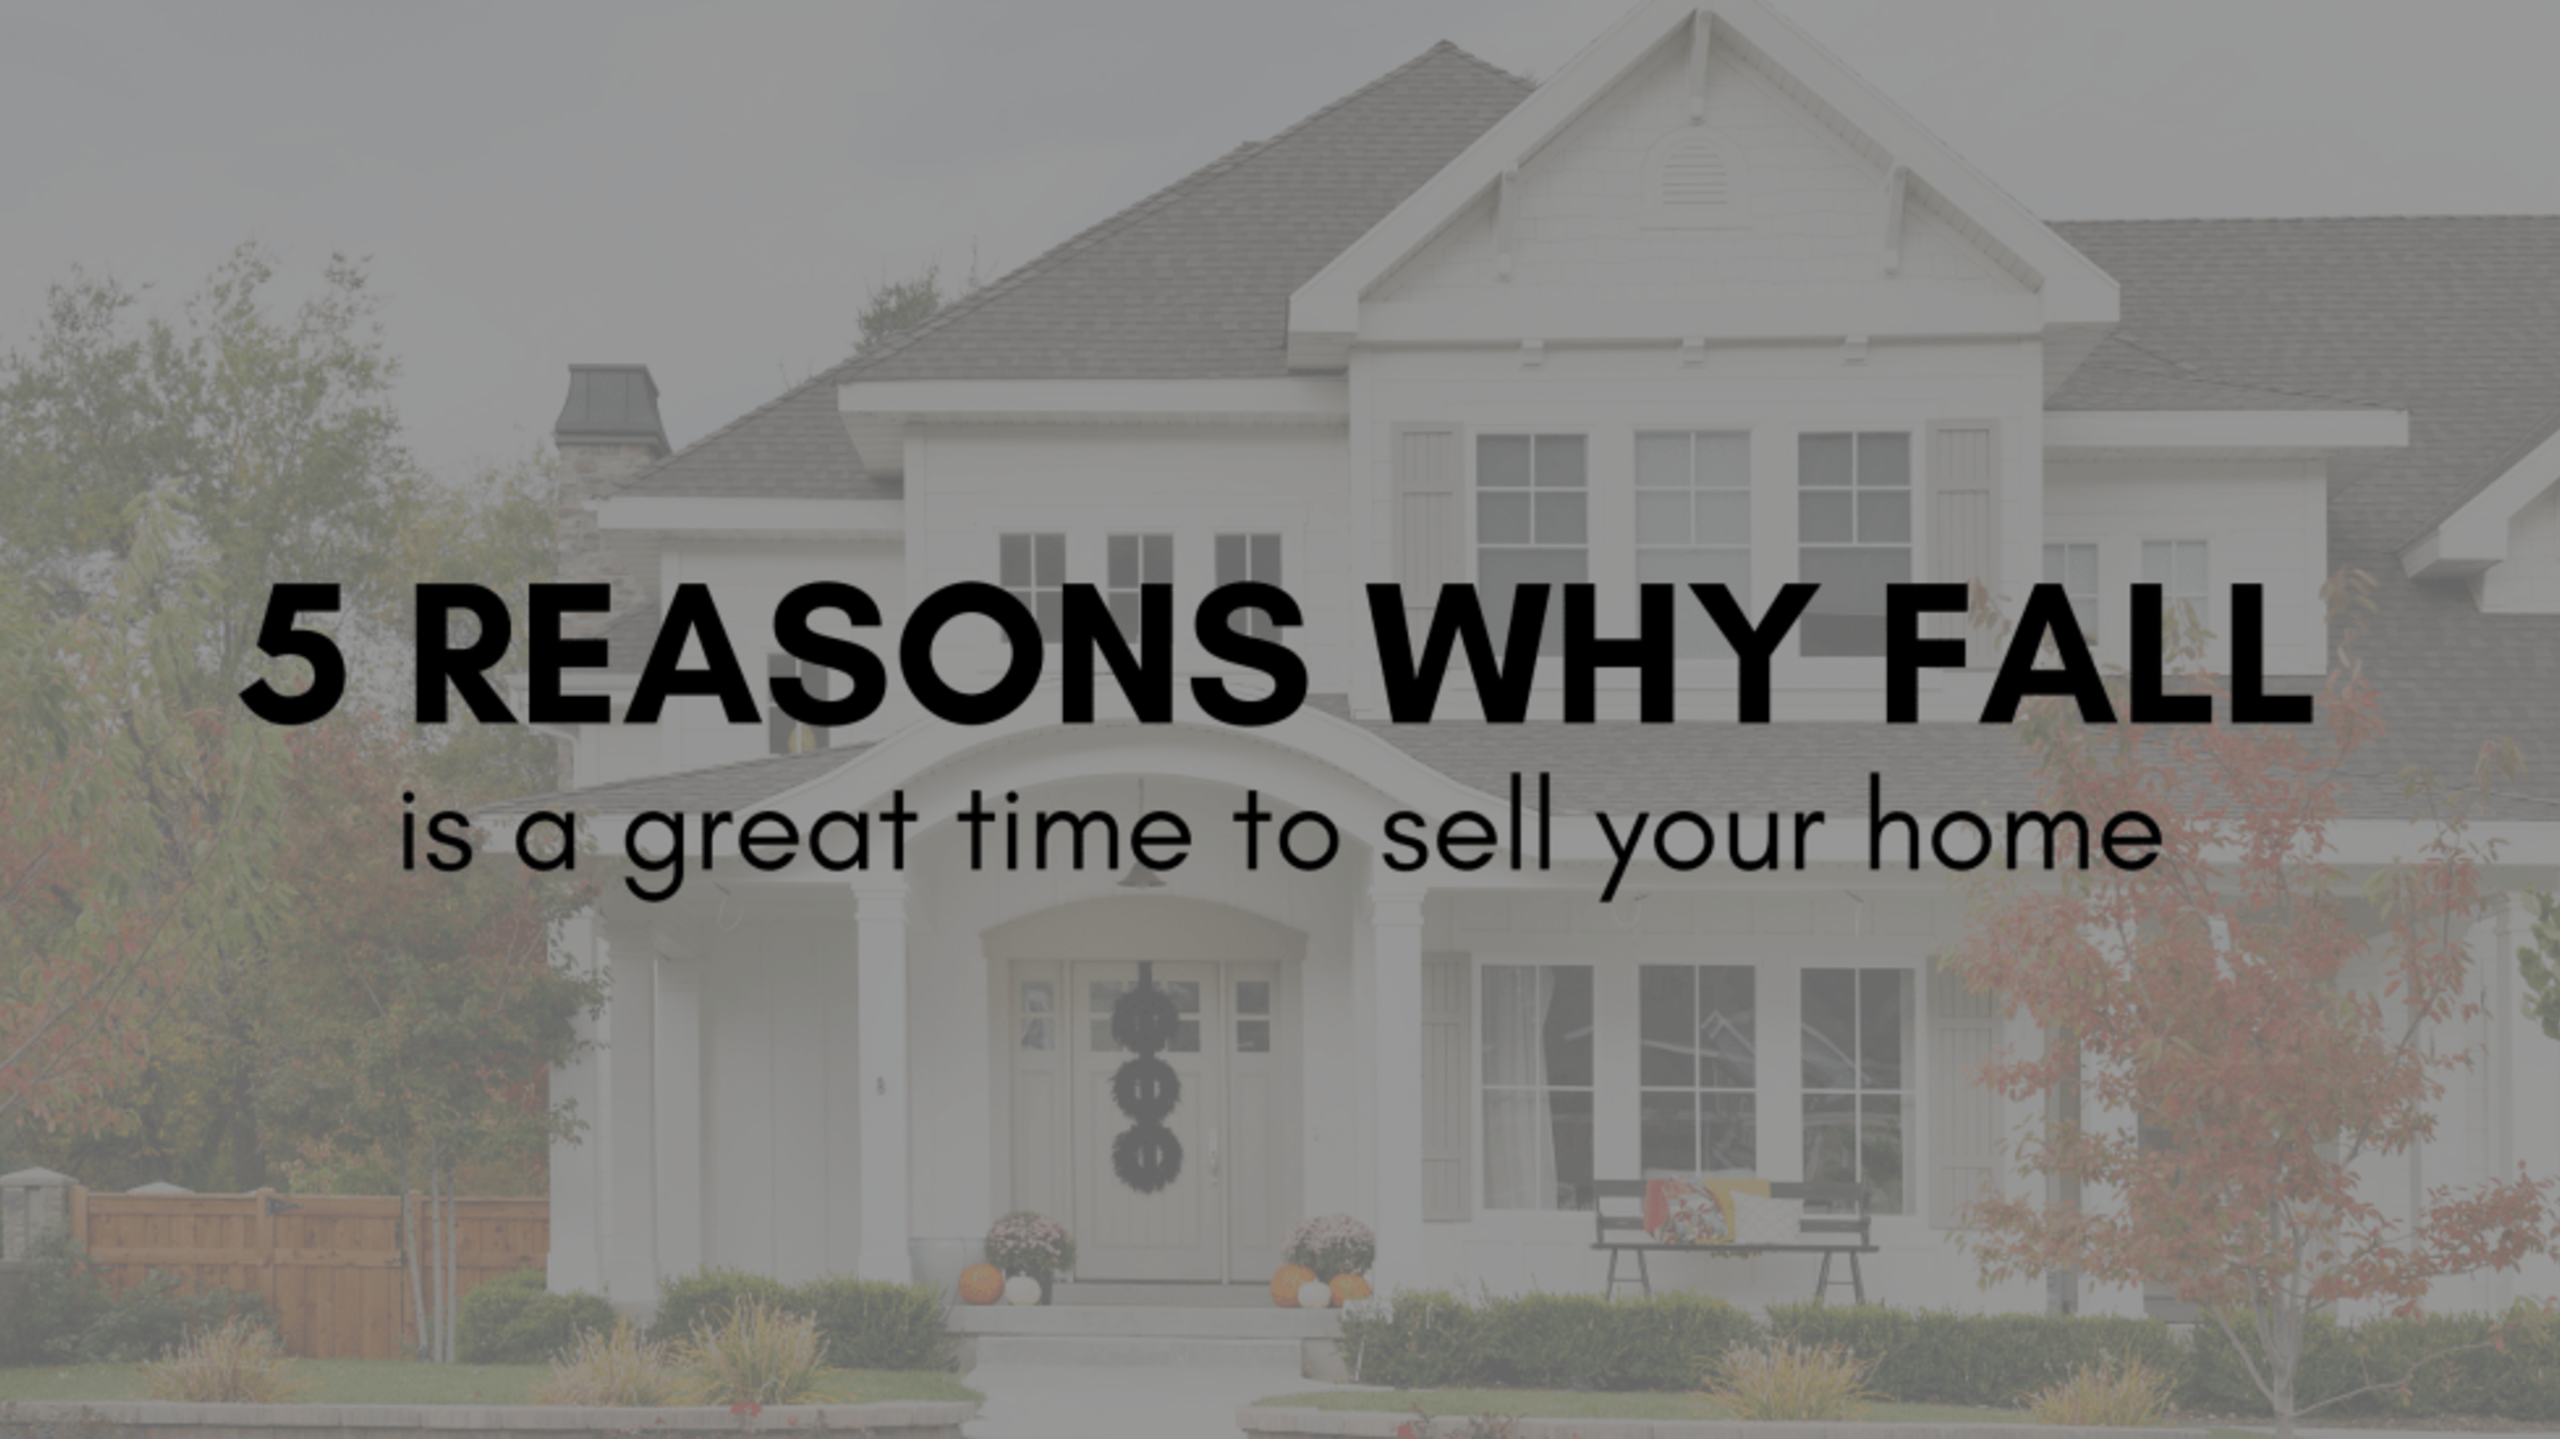 Why Fall is the Perfect Time to Sell!